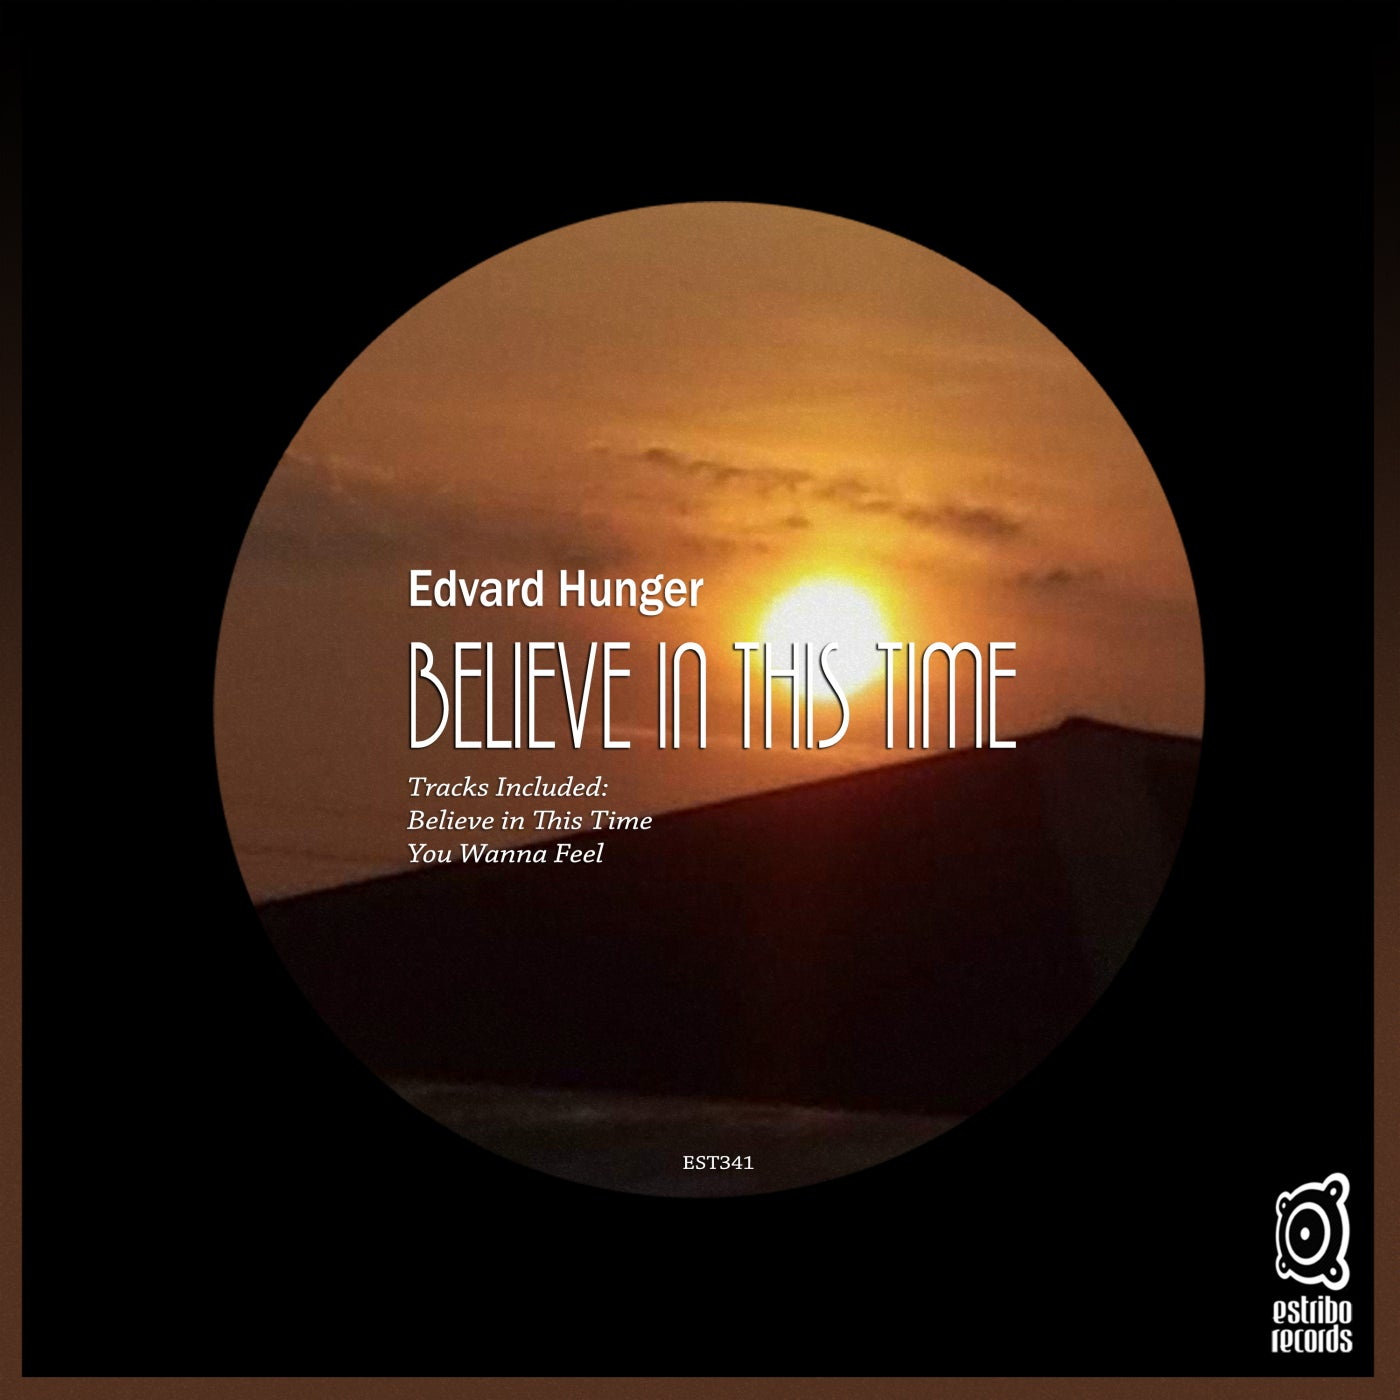 Edvard Hunger - Believe in This Time (2021)